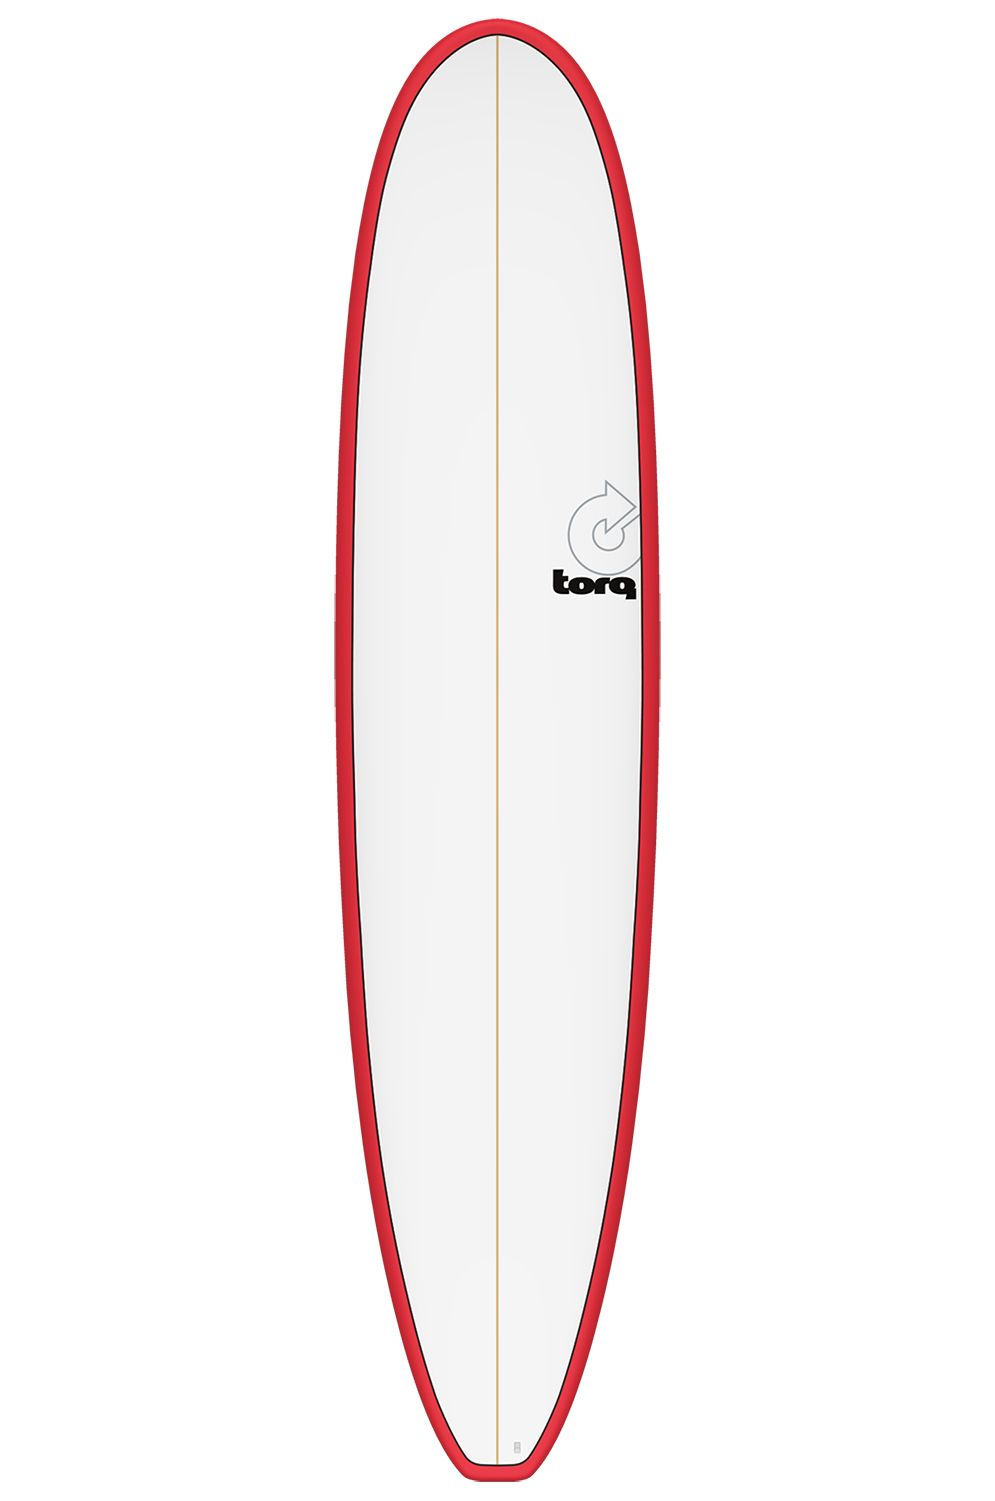 Prancha Surf Torq 8'6 LONGBOARD RED + PINLINE Squash Tail - Color 2 + 1 Futures 8ft6